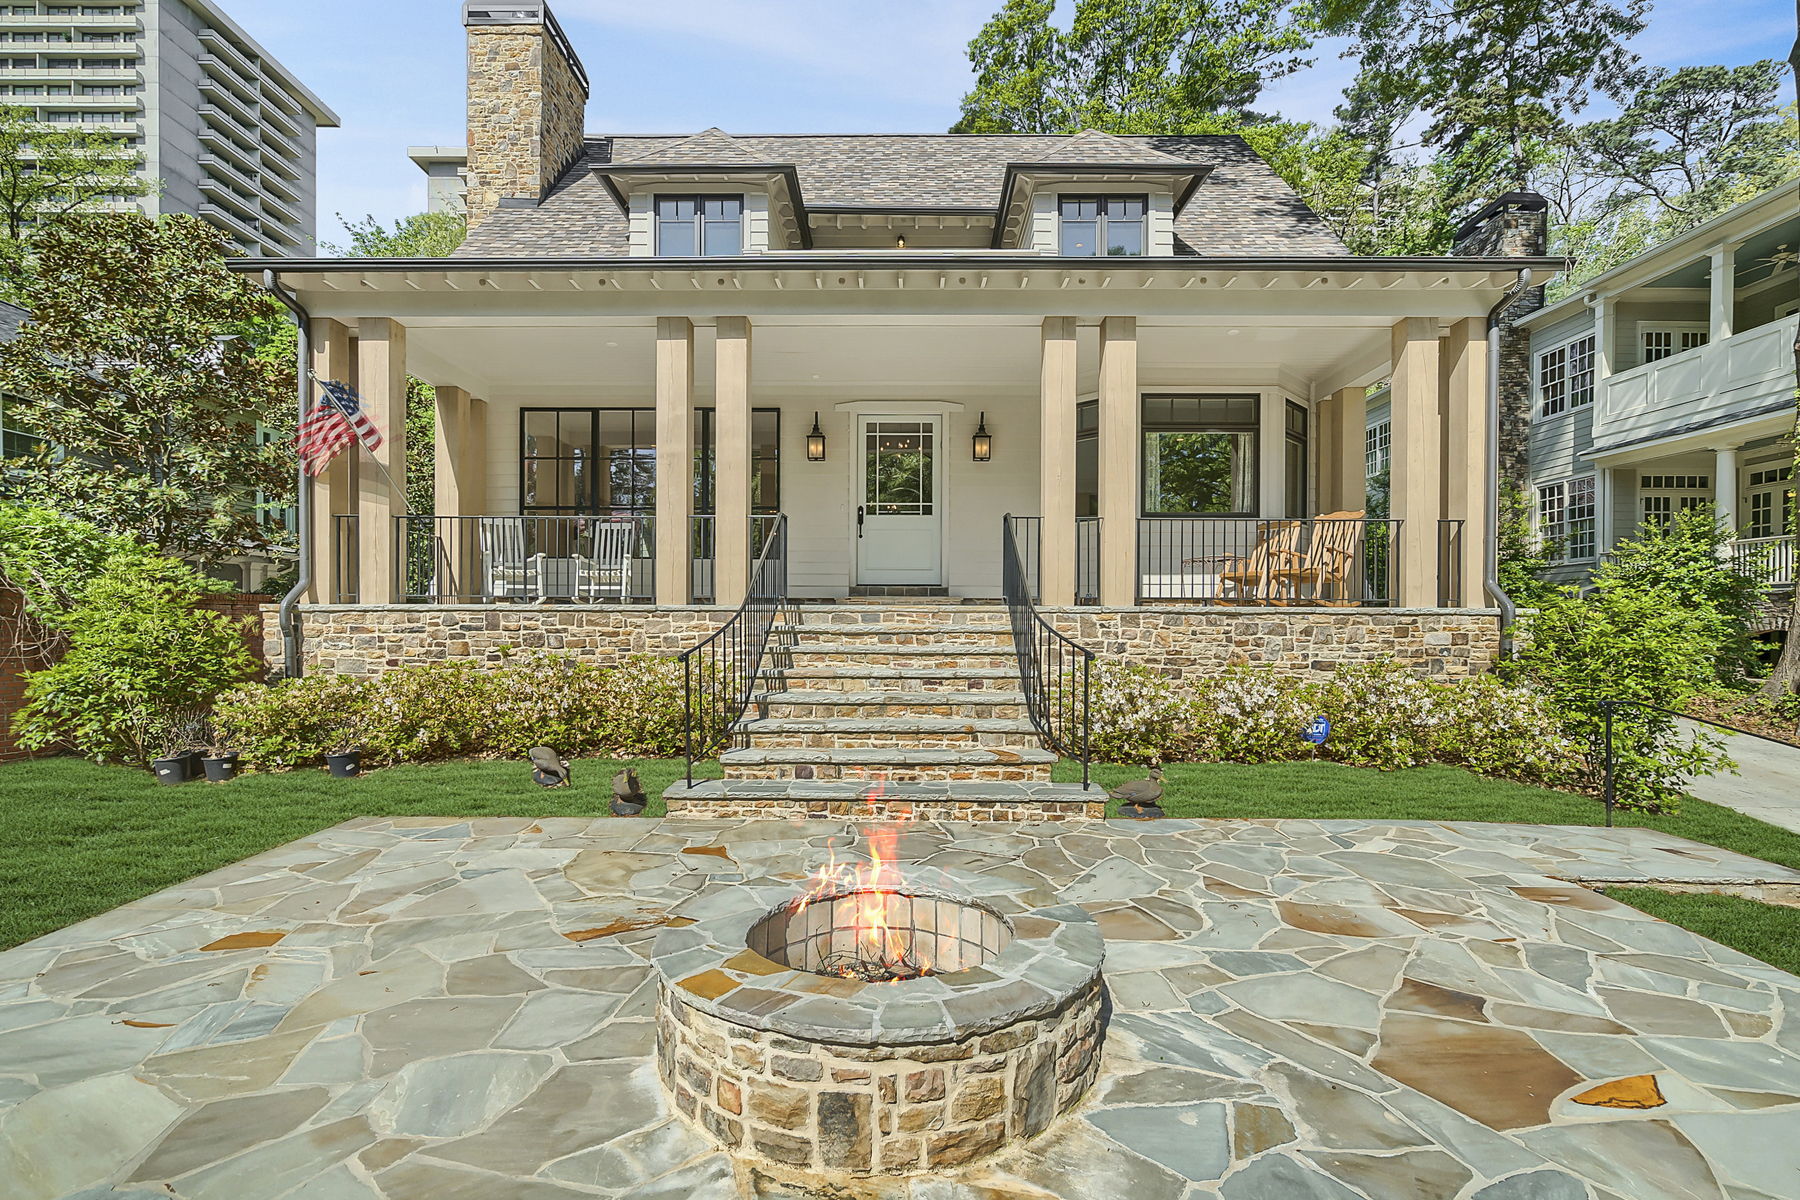 Single Family Home for Sale at Exceptional Custom Build Overlooking Sought After Duck Pond And Park 2618 Parkside Drive NE Atlanta, Georgia 30305 United States